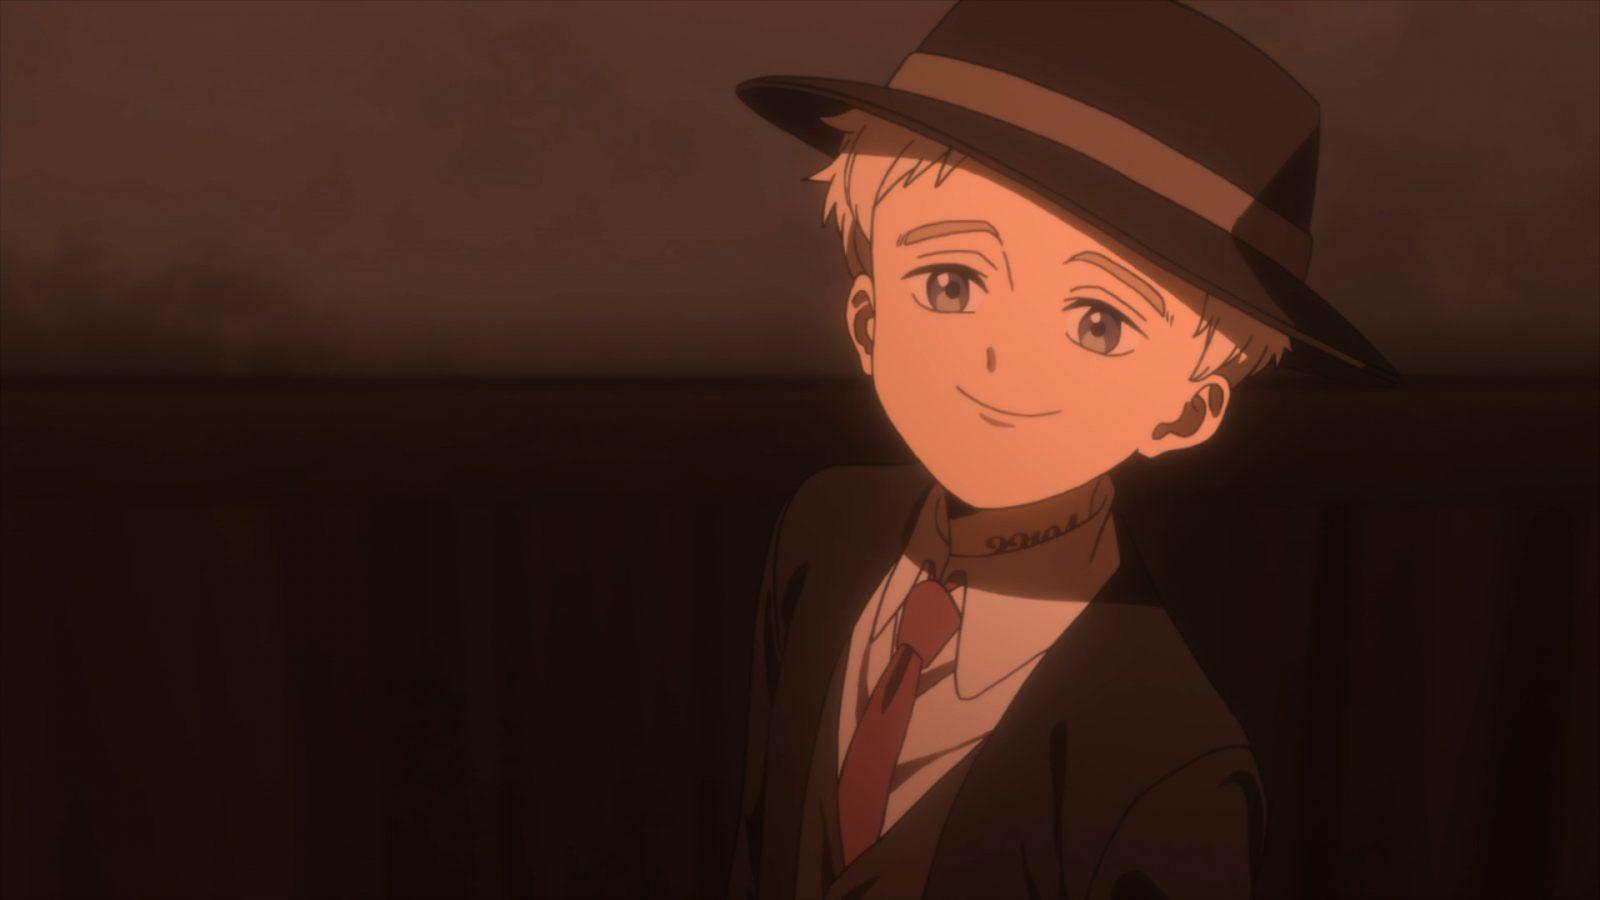 [HorribleSubs] Yakusoku no Neverland - 10 [1080p].mkv_snapshot_12.23.688